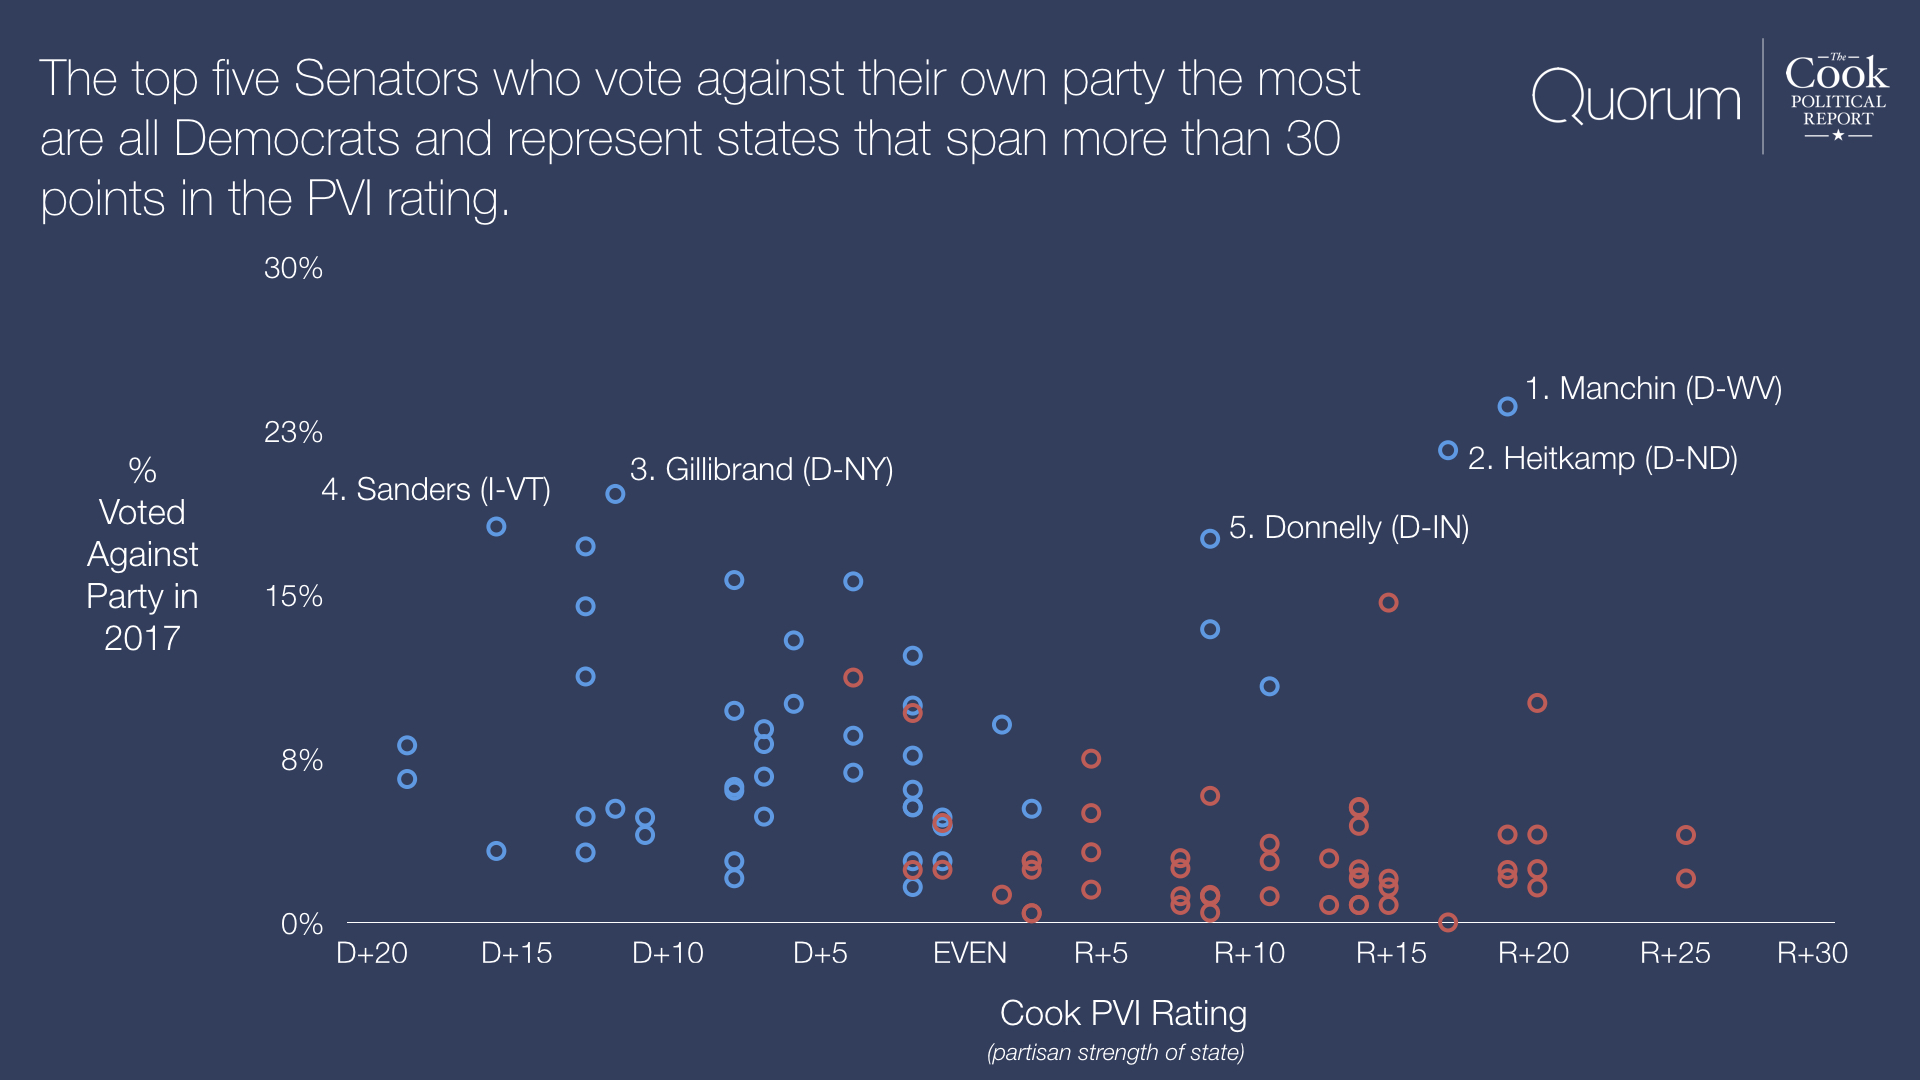 The top five Senators who vote against their own party the most are all Democrats and represent states that span more than 30 points in the PVI rating.